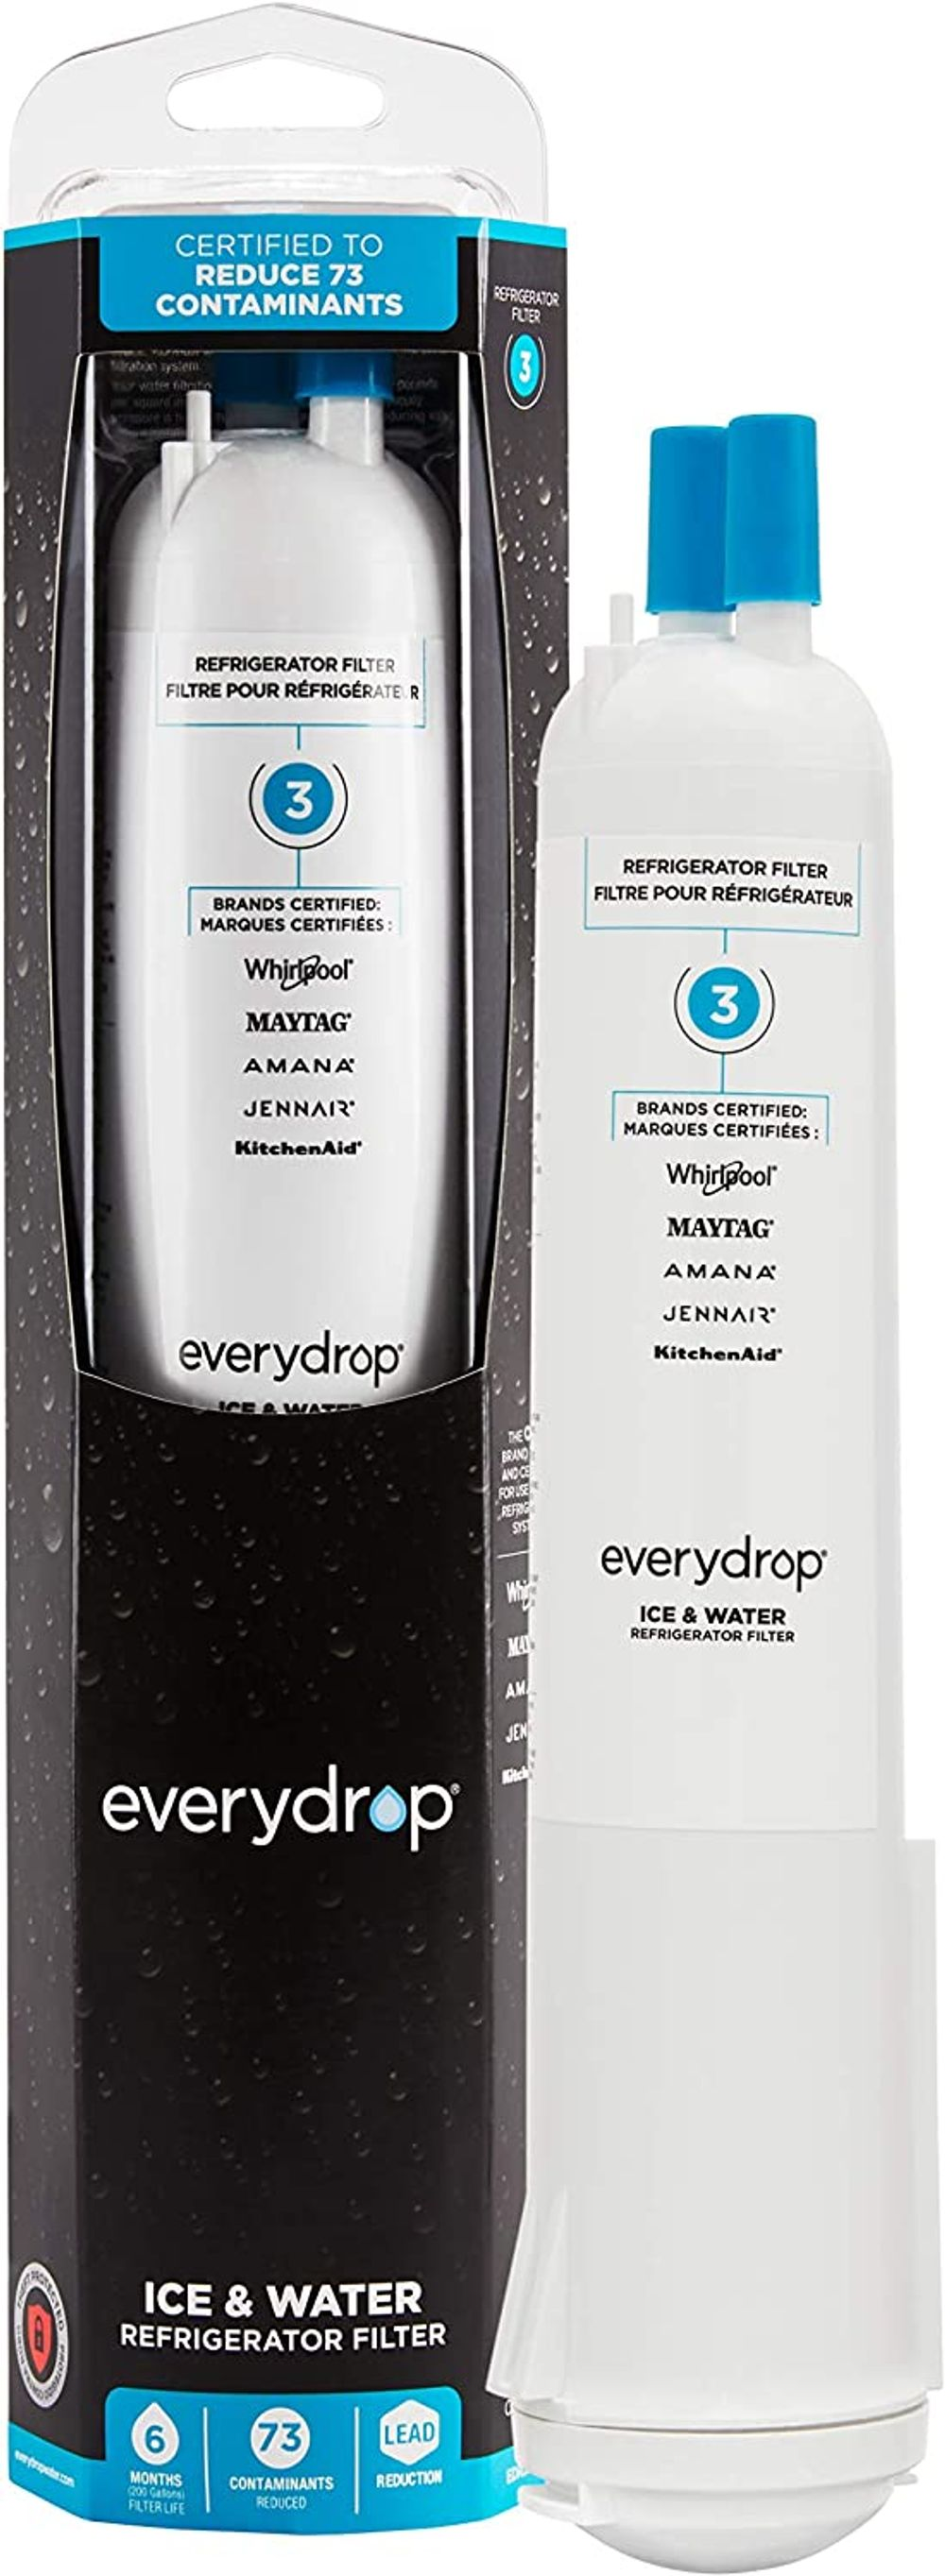 EveryDrop by Whirlpool Refrigerator Water Filter 3, EDR3RXD1 (Pack of 1),White